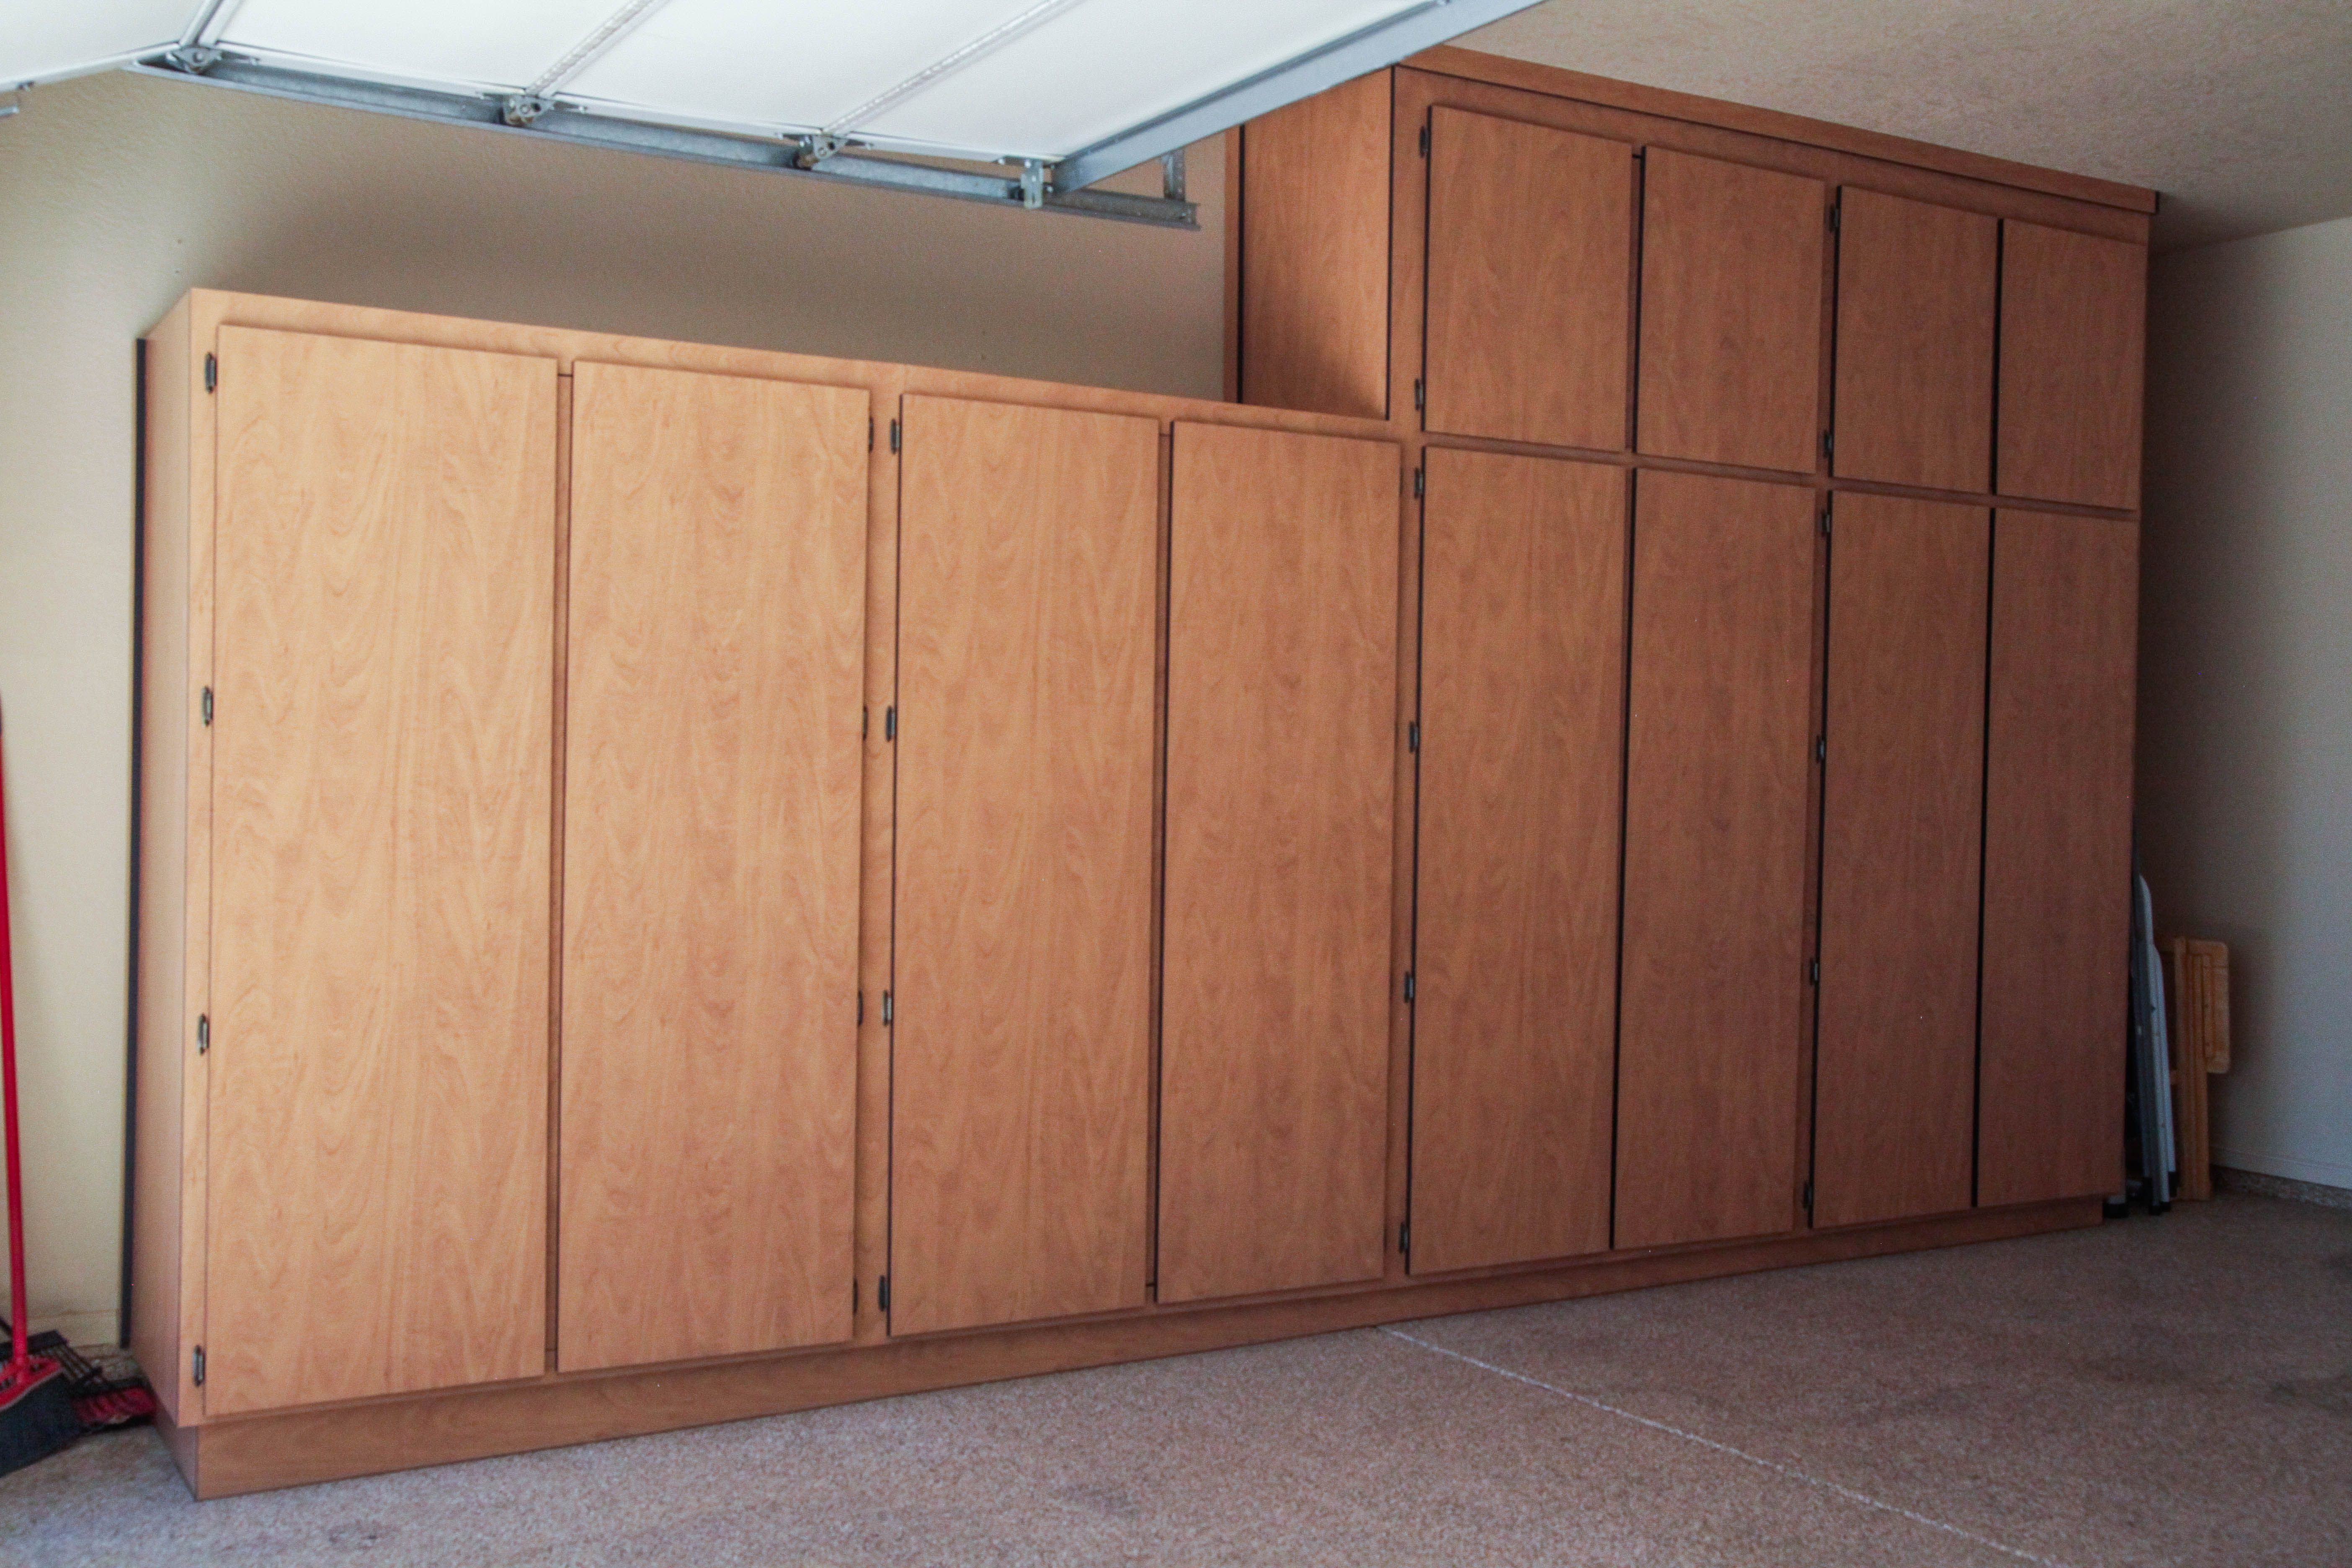 lowest garage systems of large designs cabinet for price organization and cabinets custom size storage floors full